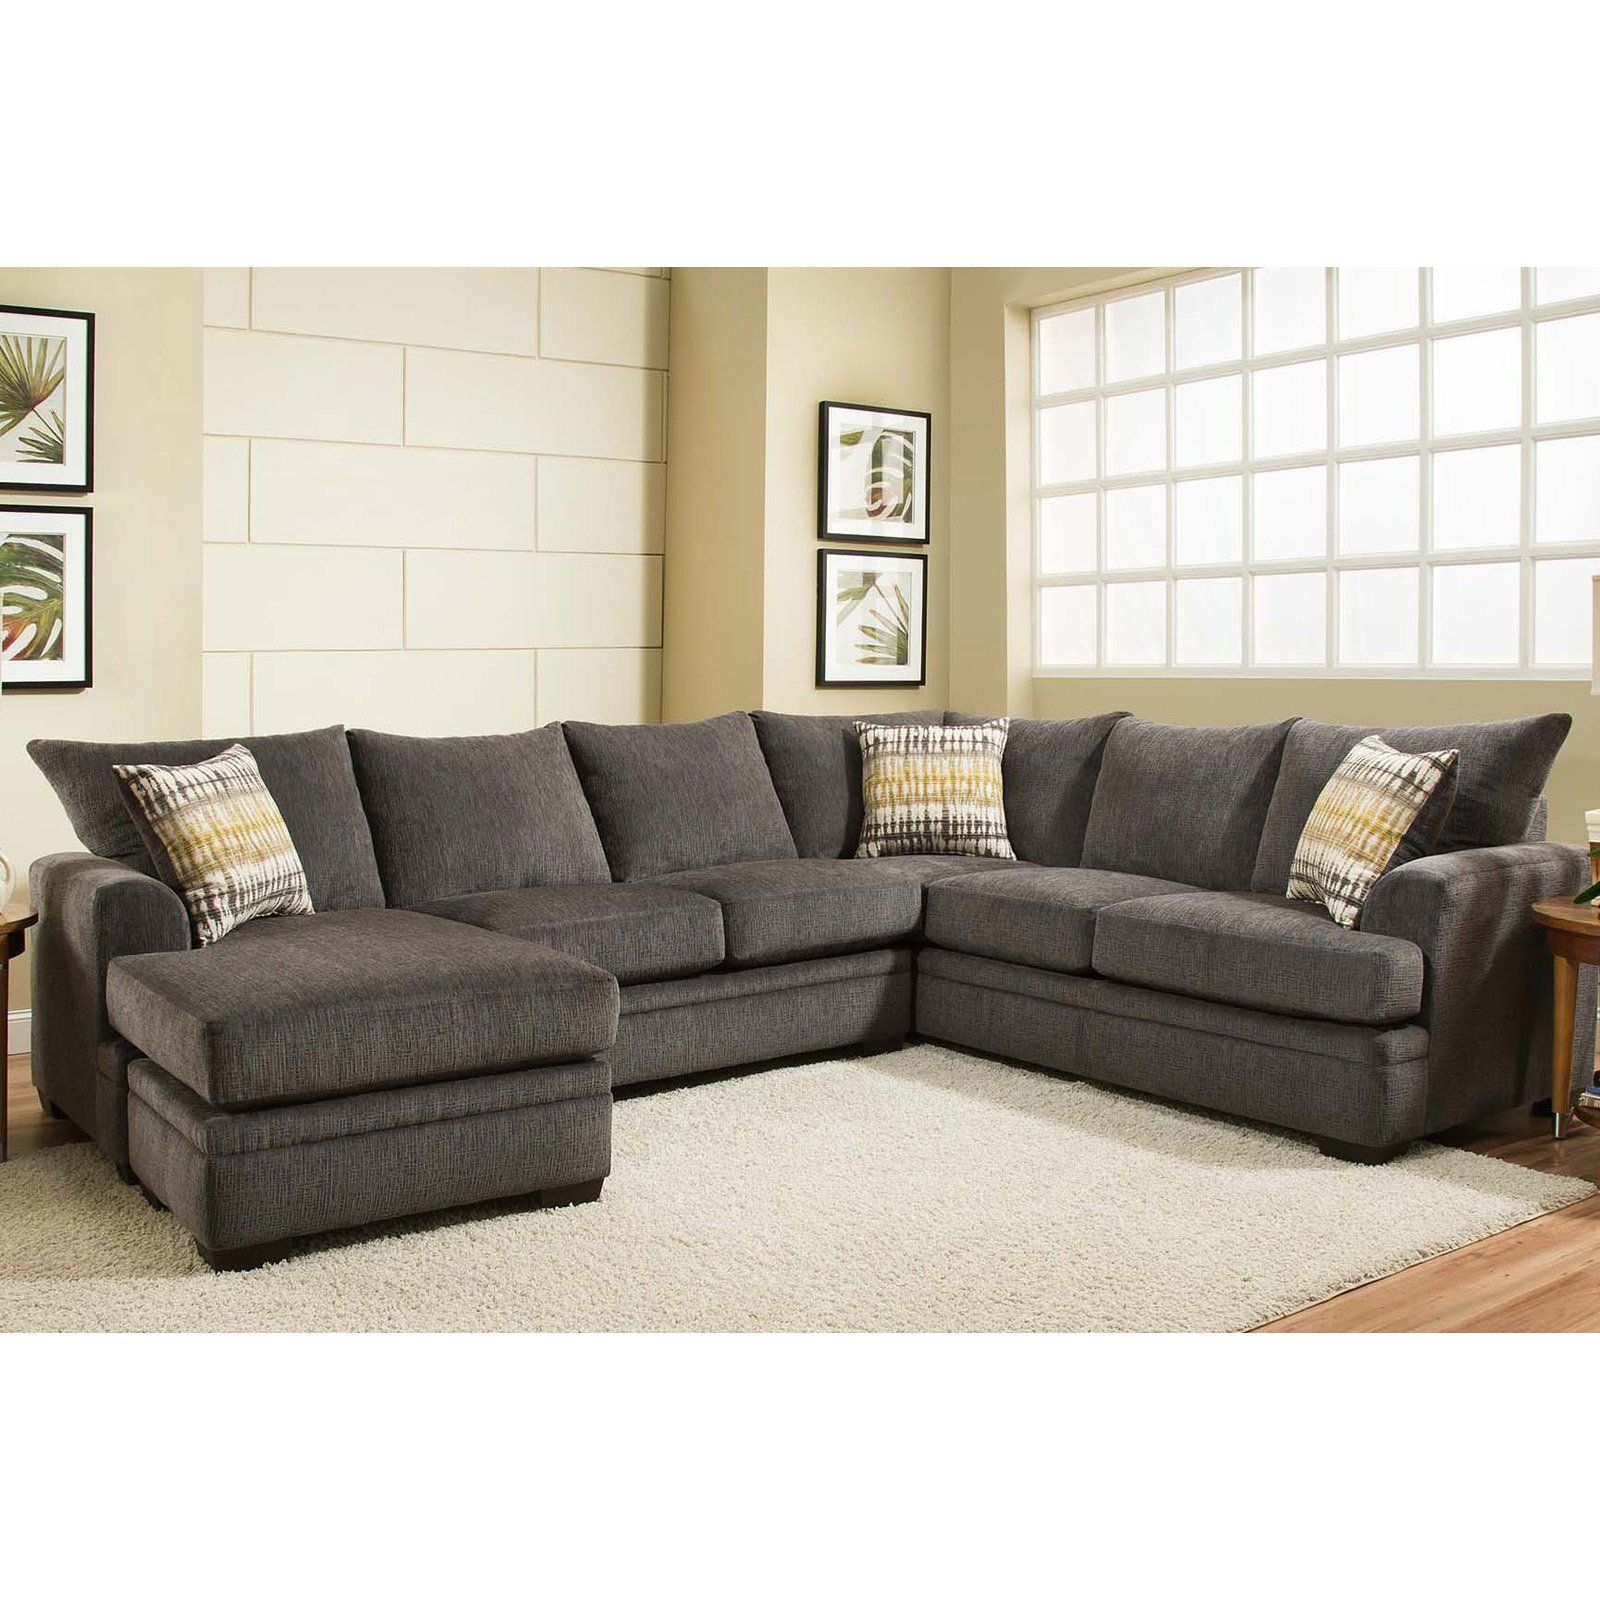 Chelsea Home Furniture Louis Sectional Sofa Perth Smoke In - Living Room Chairs Perth